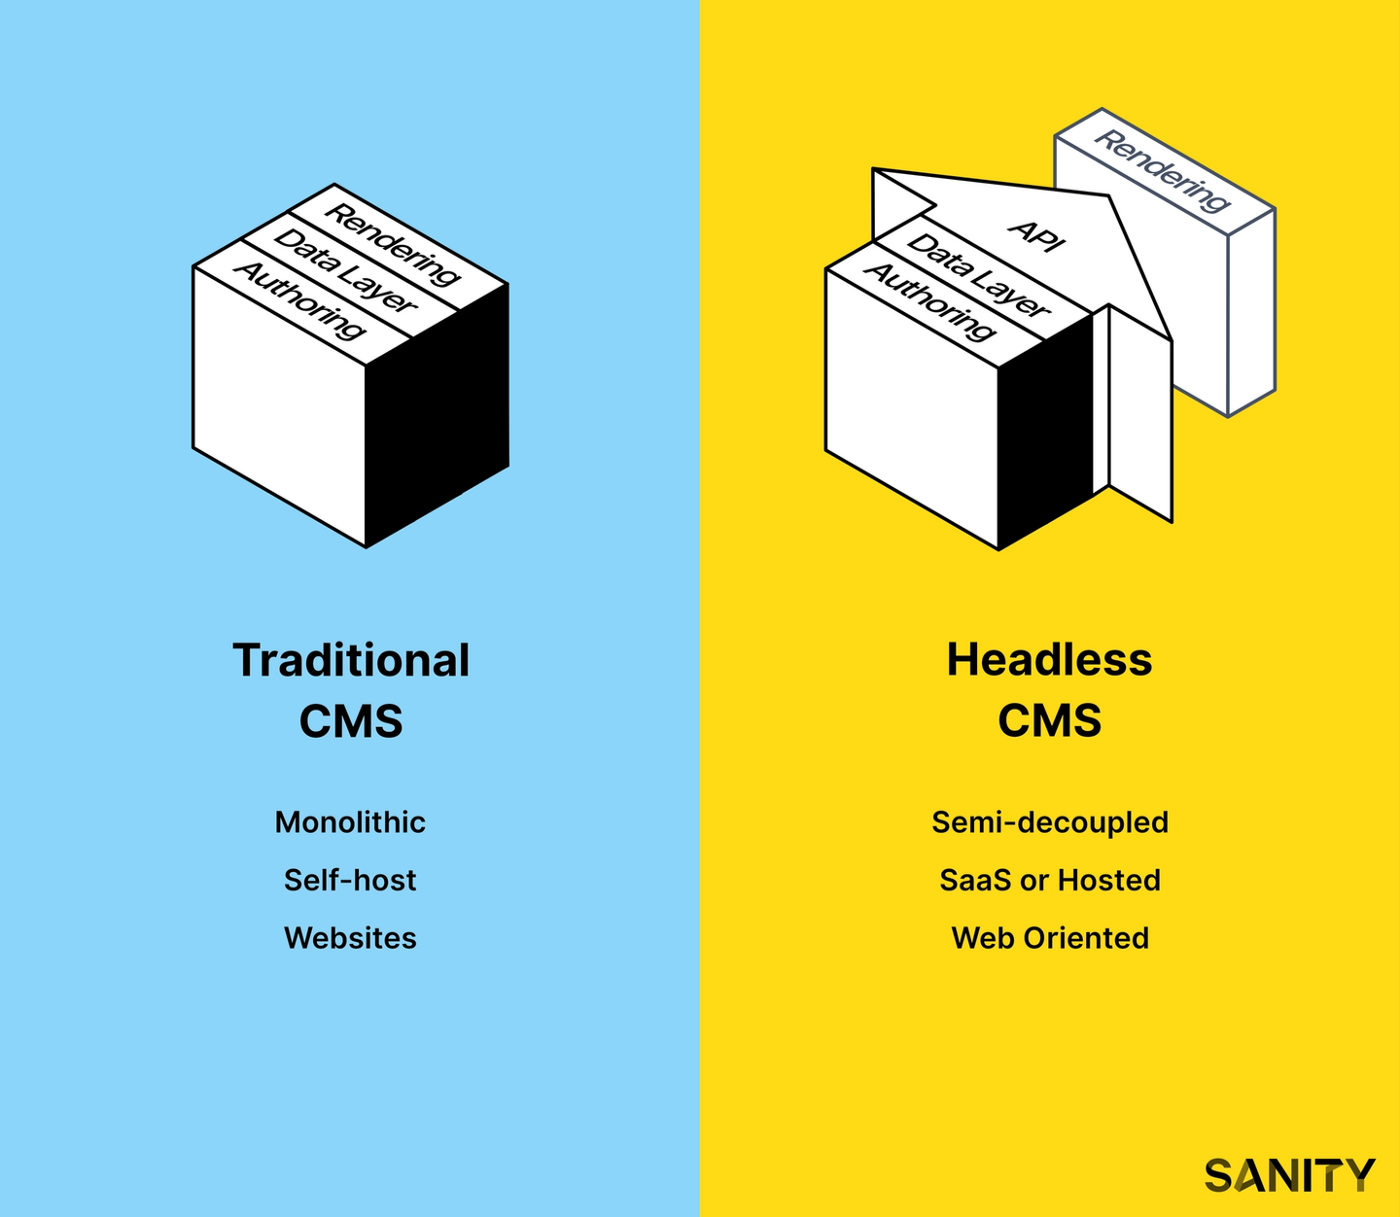 The differences between a traditional CMS and a headless CMS